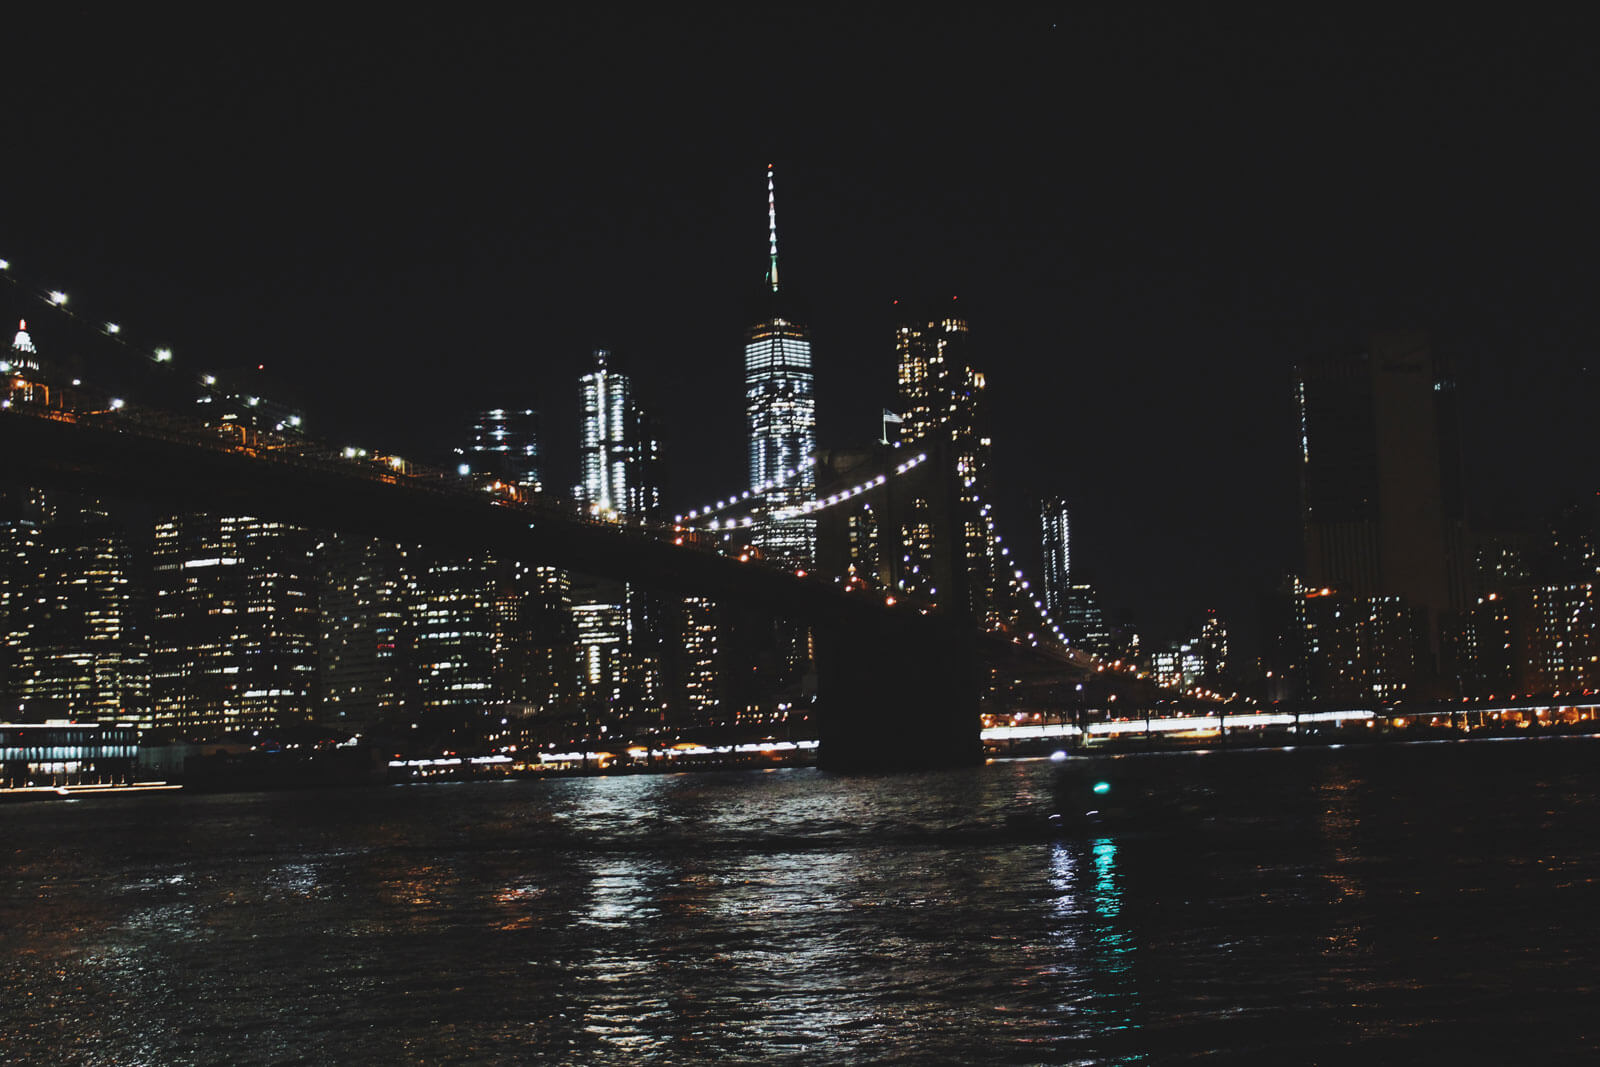 Brooklyn Bridge park at night by Katie Hinkle